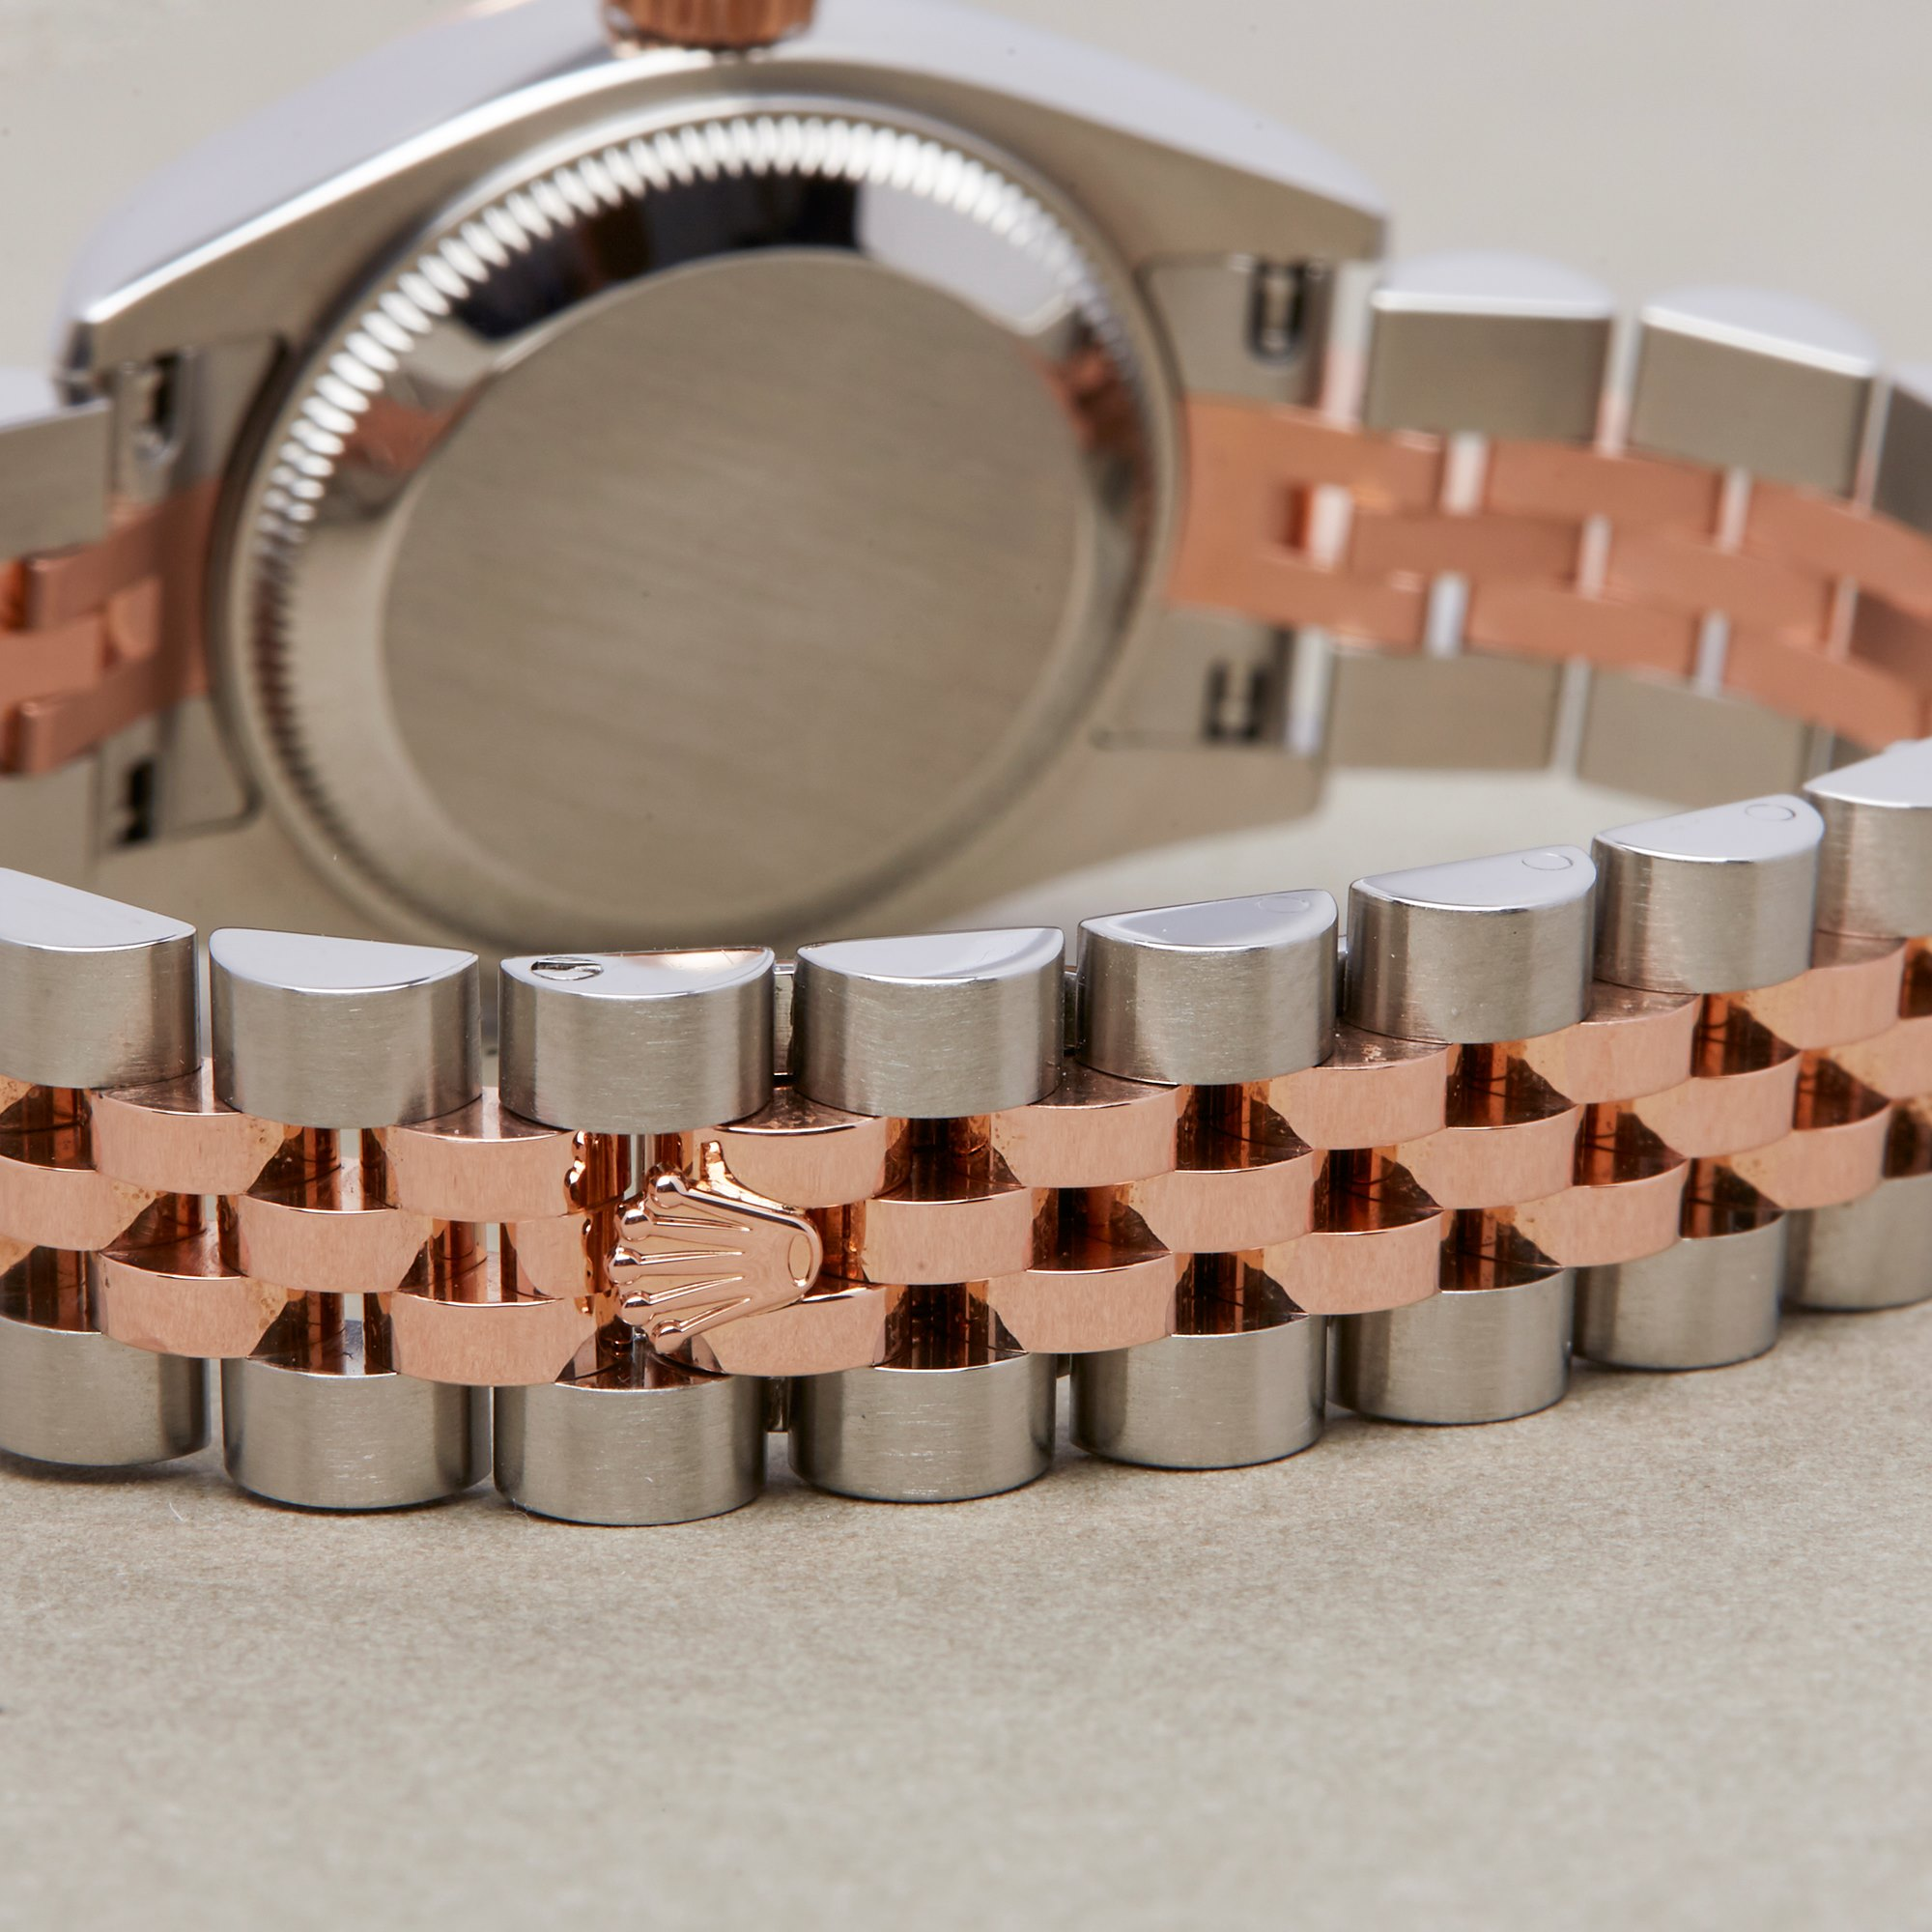 Rolex Datejust 26 179171 Ladies Rose Gold & Stainless Steel Watch - Image 5 of 10